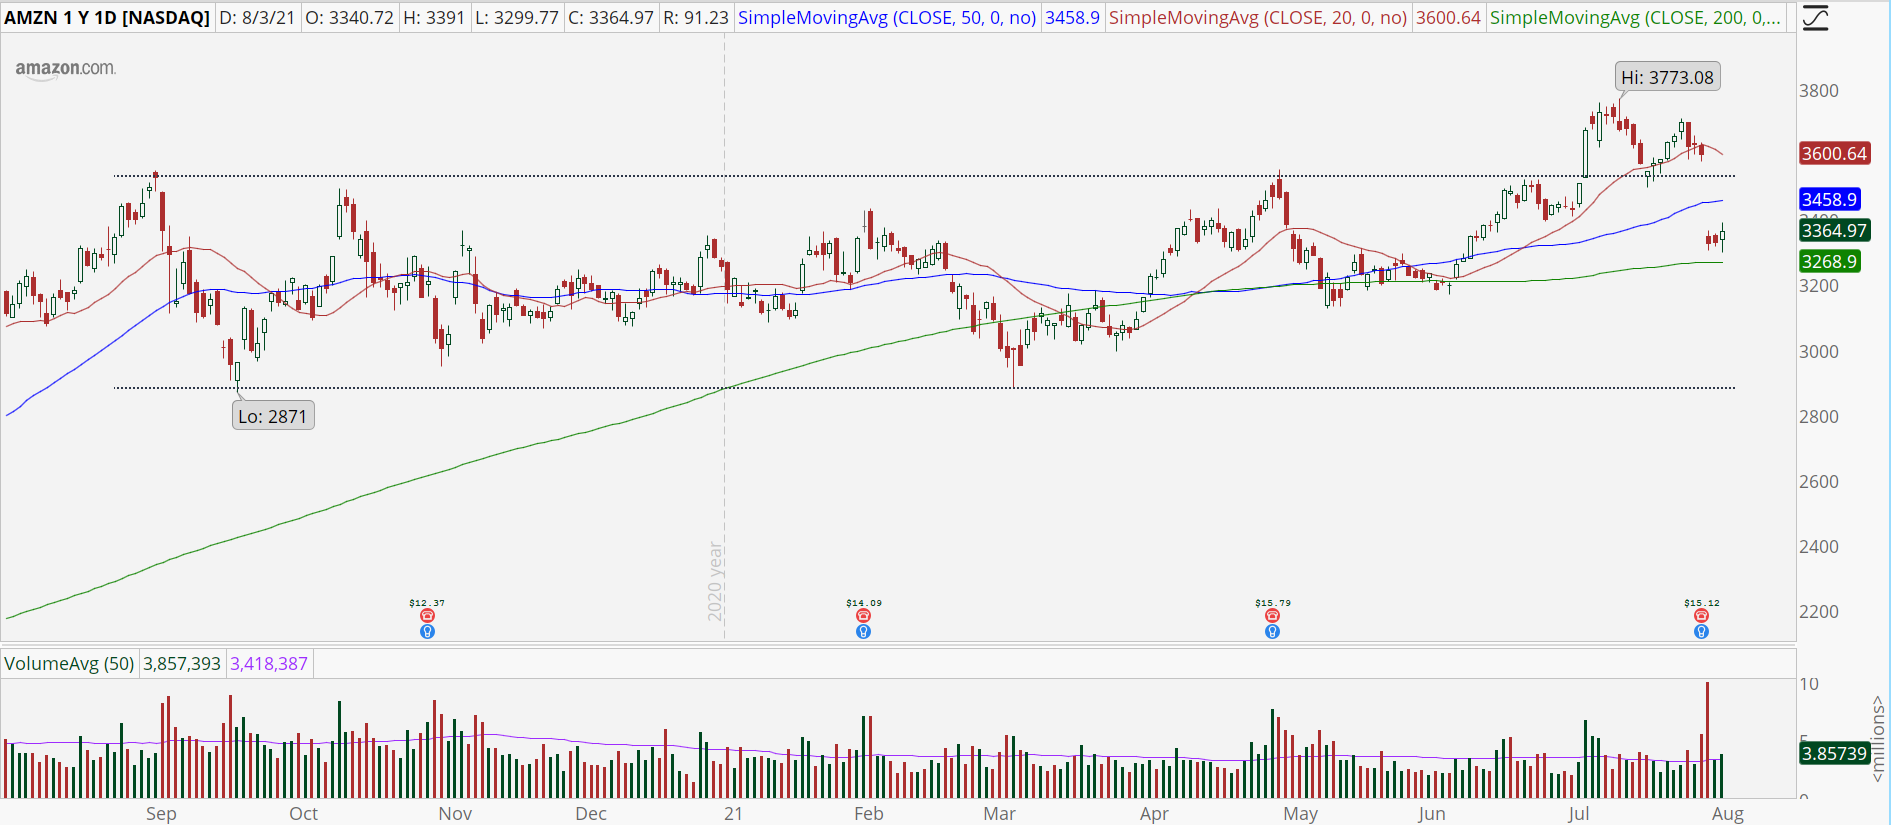 Amazon (AMZN) stock daily chart with price stuck in a trading range